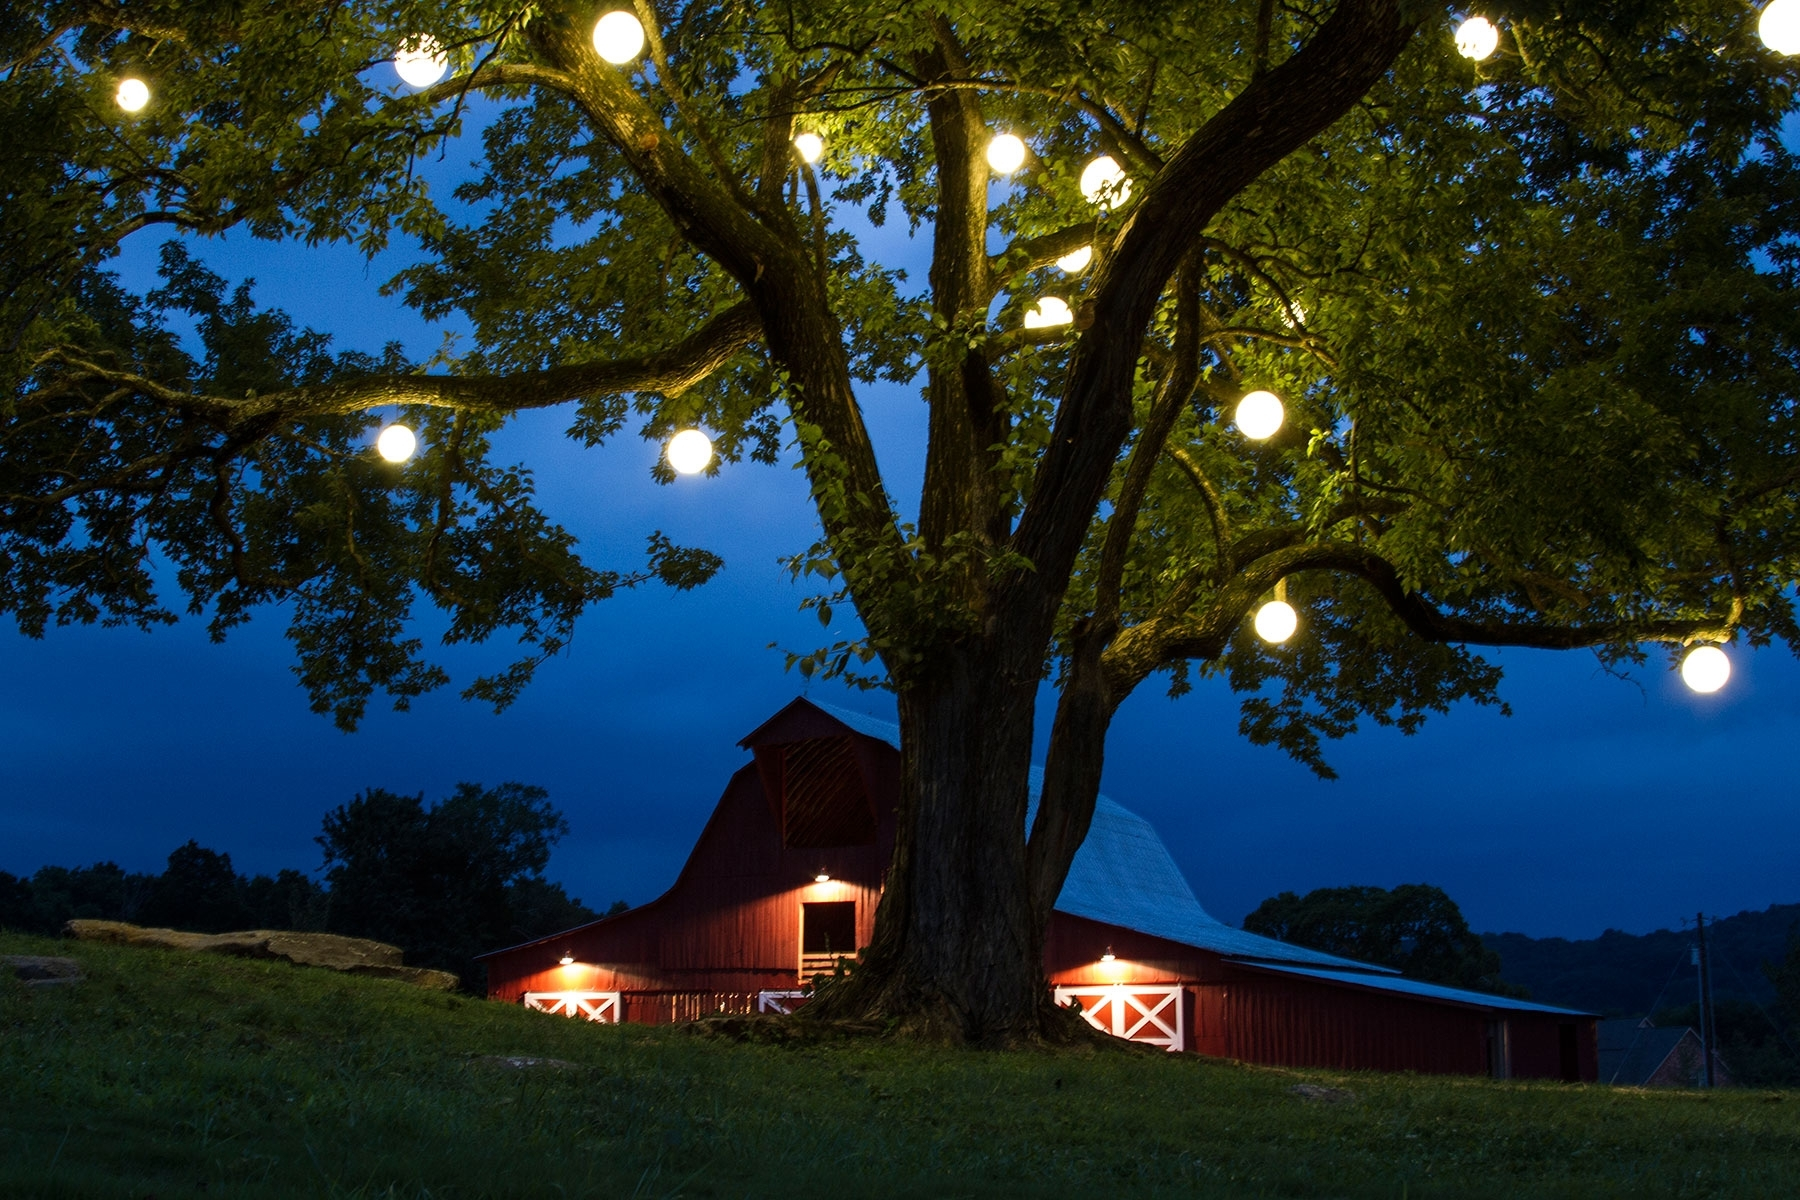 Inspiration about Diy : Outdoor Hanging Lights For Stylish Garden Ideas With Big Tree Inside Hanging Lights On An Outdoor Tree (#2 of 15)